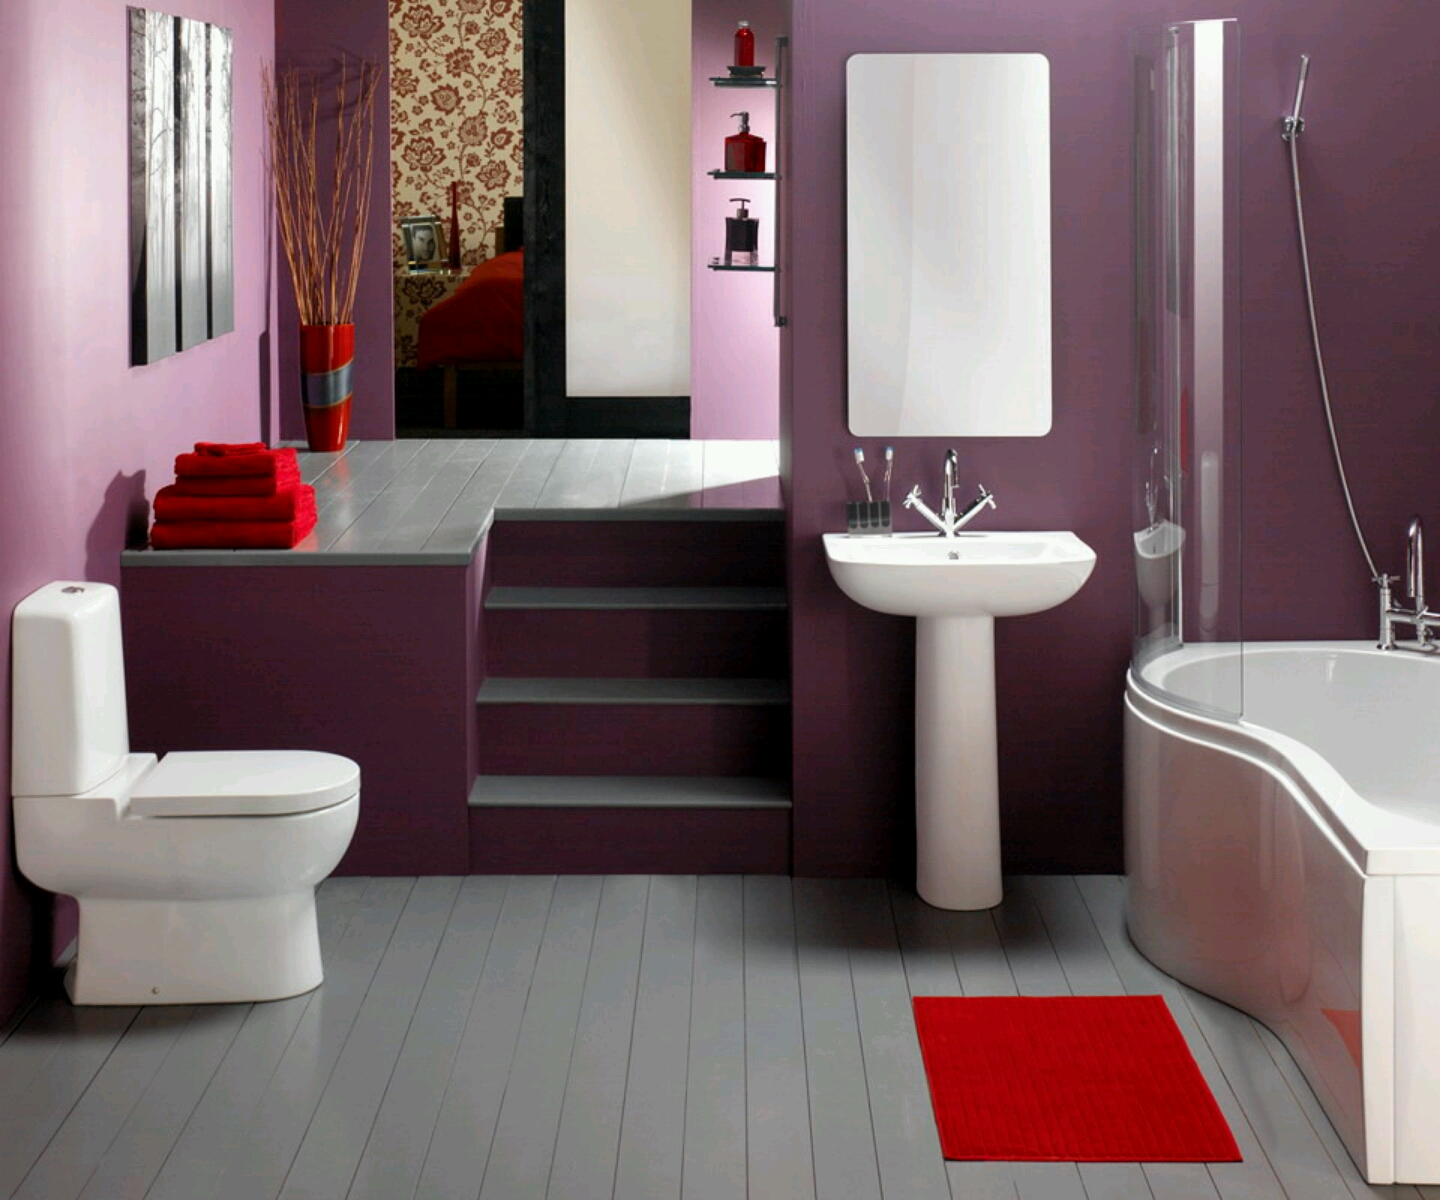 New home designs latest luxury modern bathrooms designs decoration ideas - Bathroom design colors ...